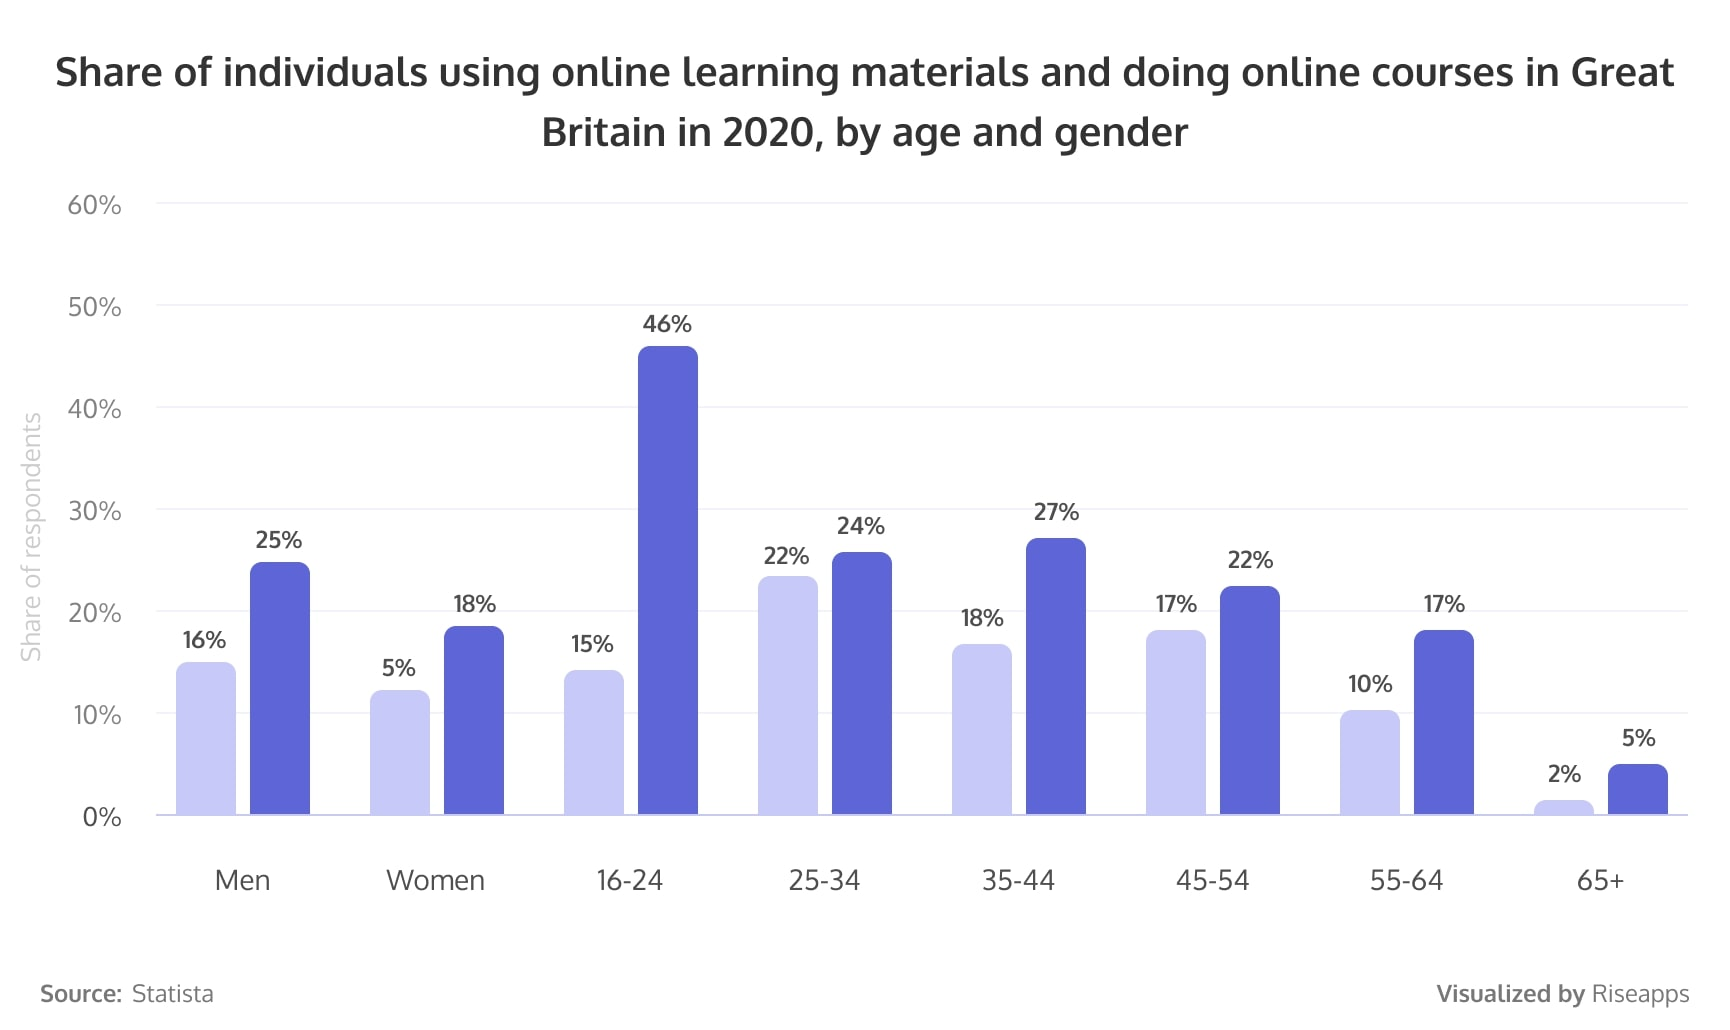 Share of individuals using online learning materials and doing online courses in Great Britain in 2020, by age and gender